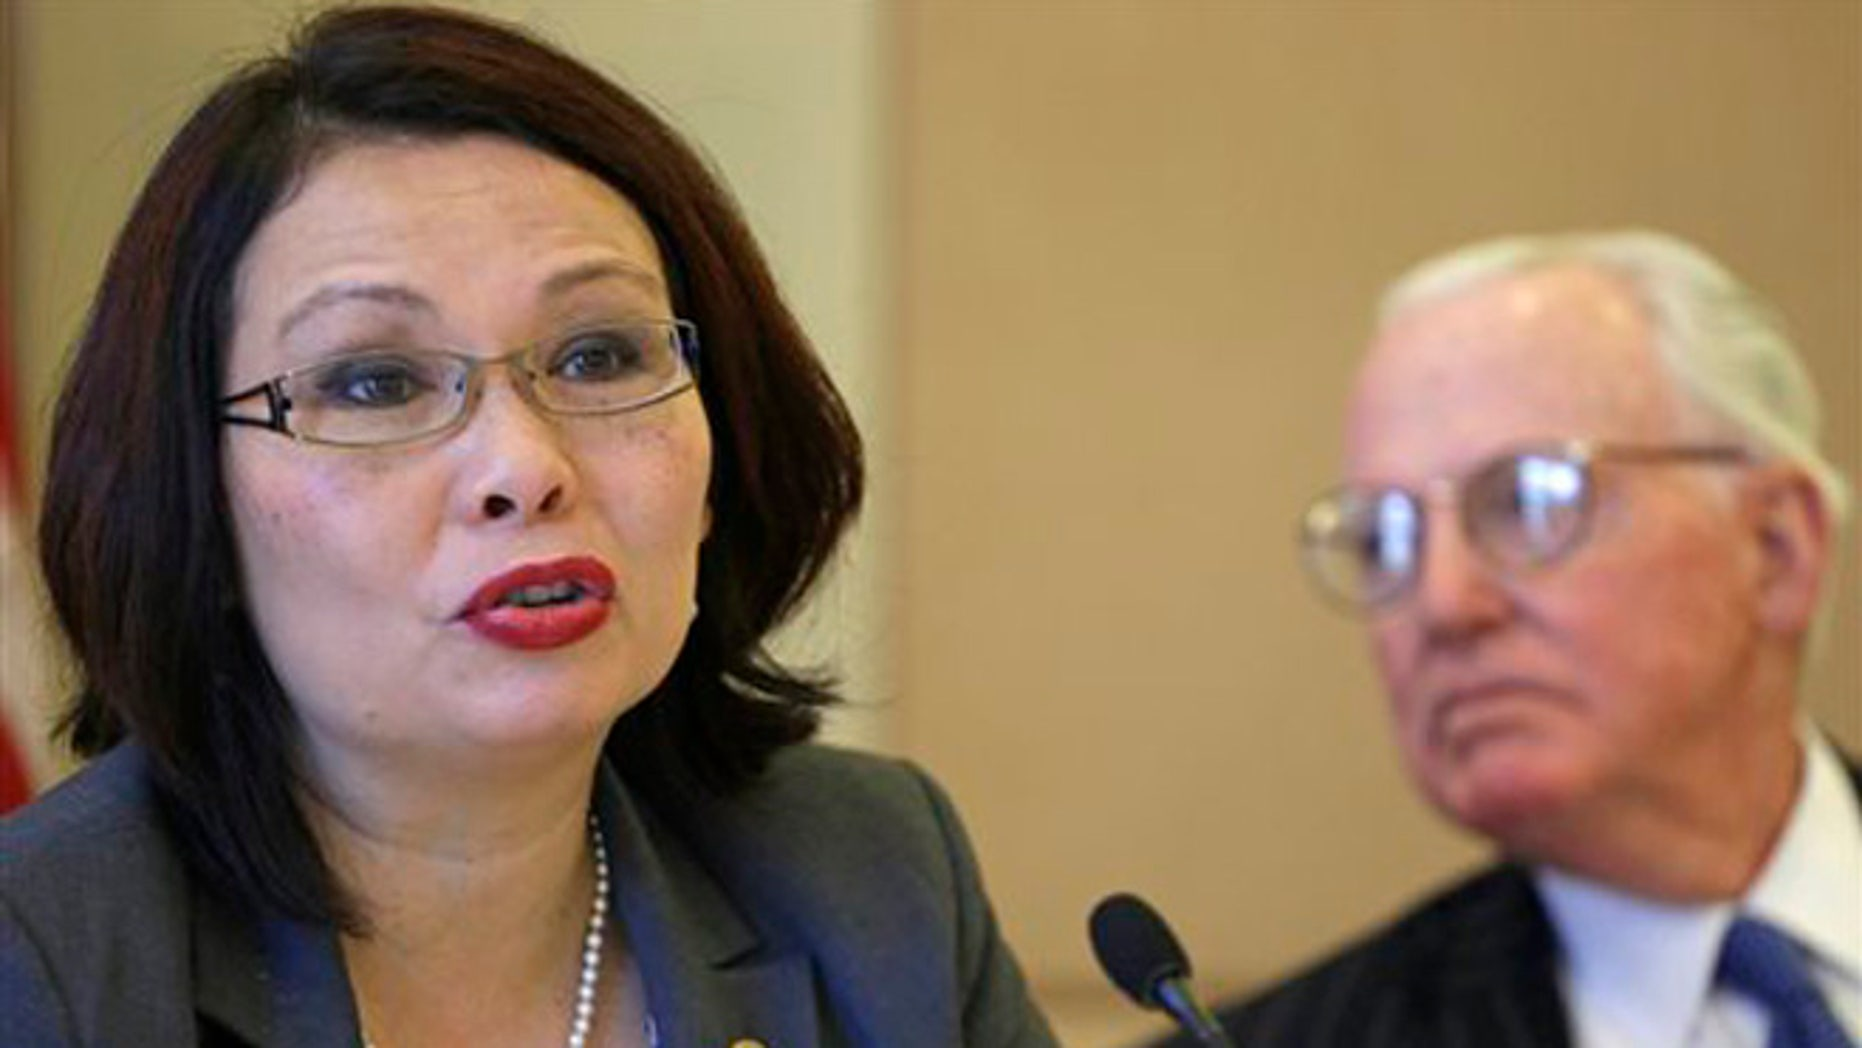 July 31, 2015: Congresswoman Tammy Duckworth and Chicago Alderman Ed Burke appear before the City Council's finance committee. The committee voted to recommend an ordinance requiring the cities airports to provide rooms where mothers can breast feed and use breast pumps.